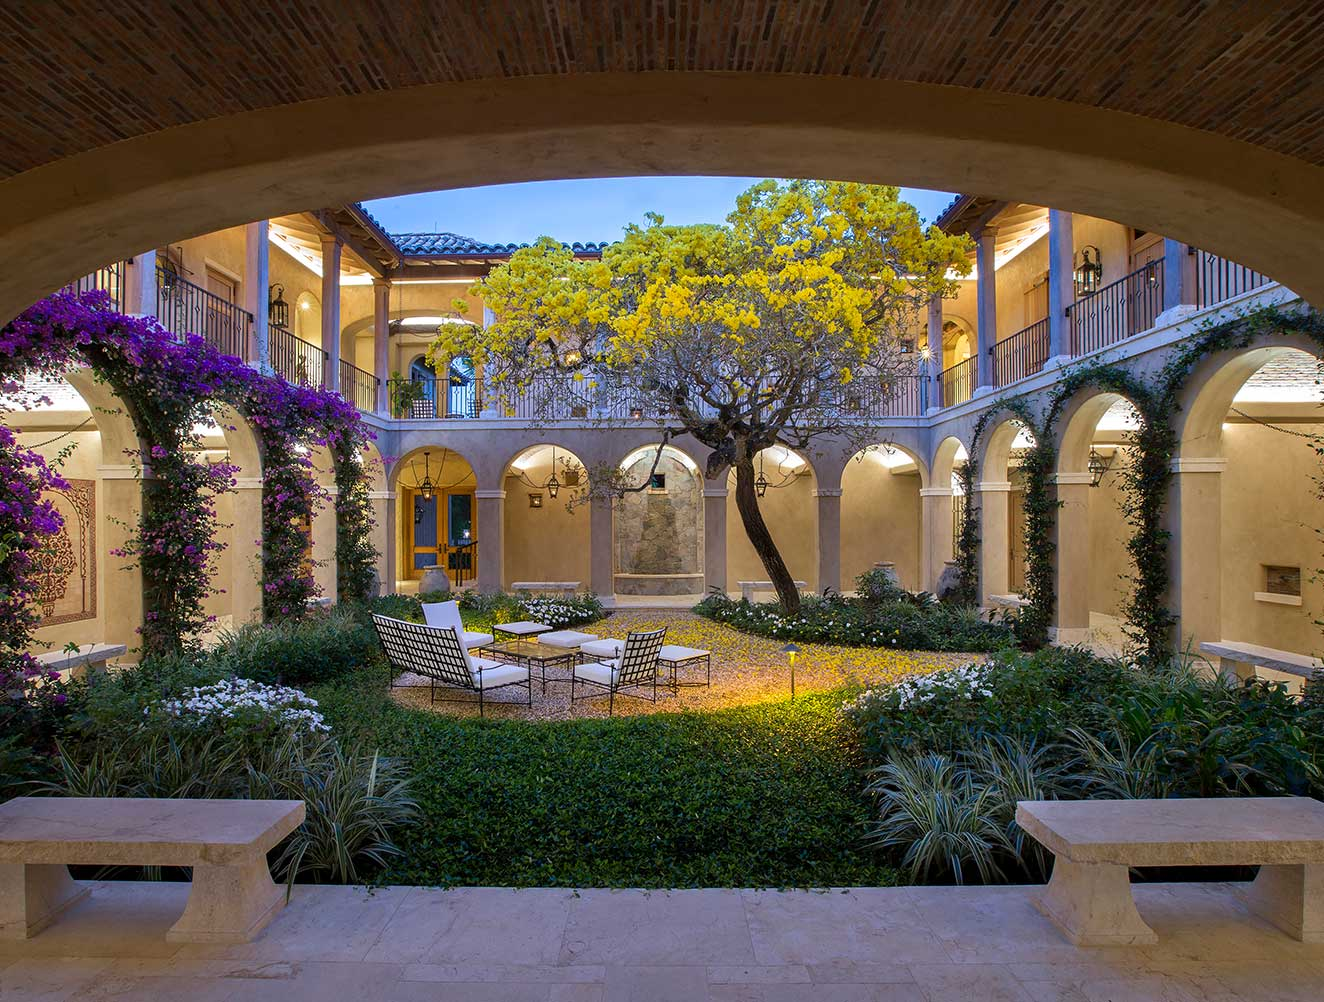 Interior Courtyard at The Gordon Estate Florida Home Designed by Kukk Architecture and Design, P.A. | Architectural Firm Naples